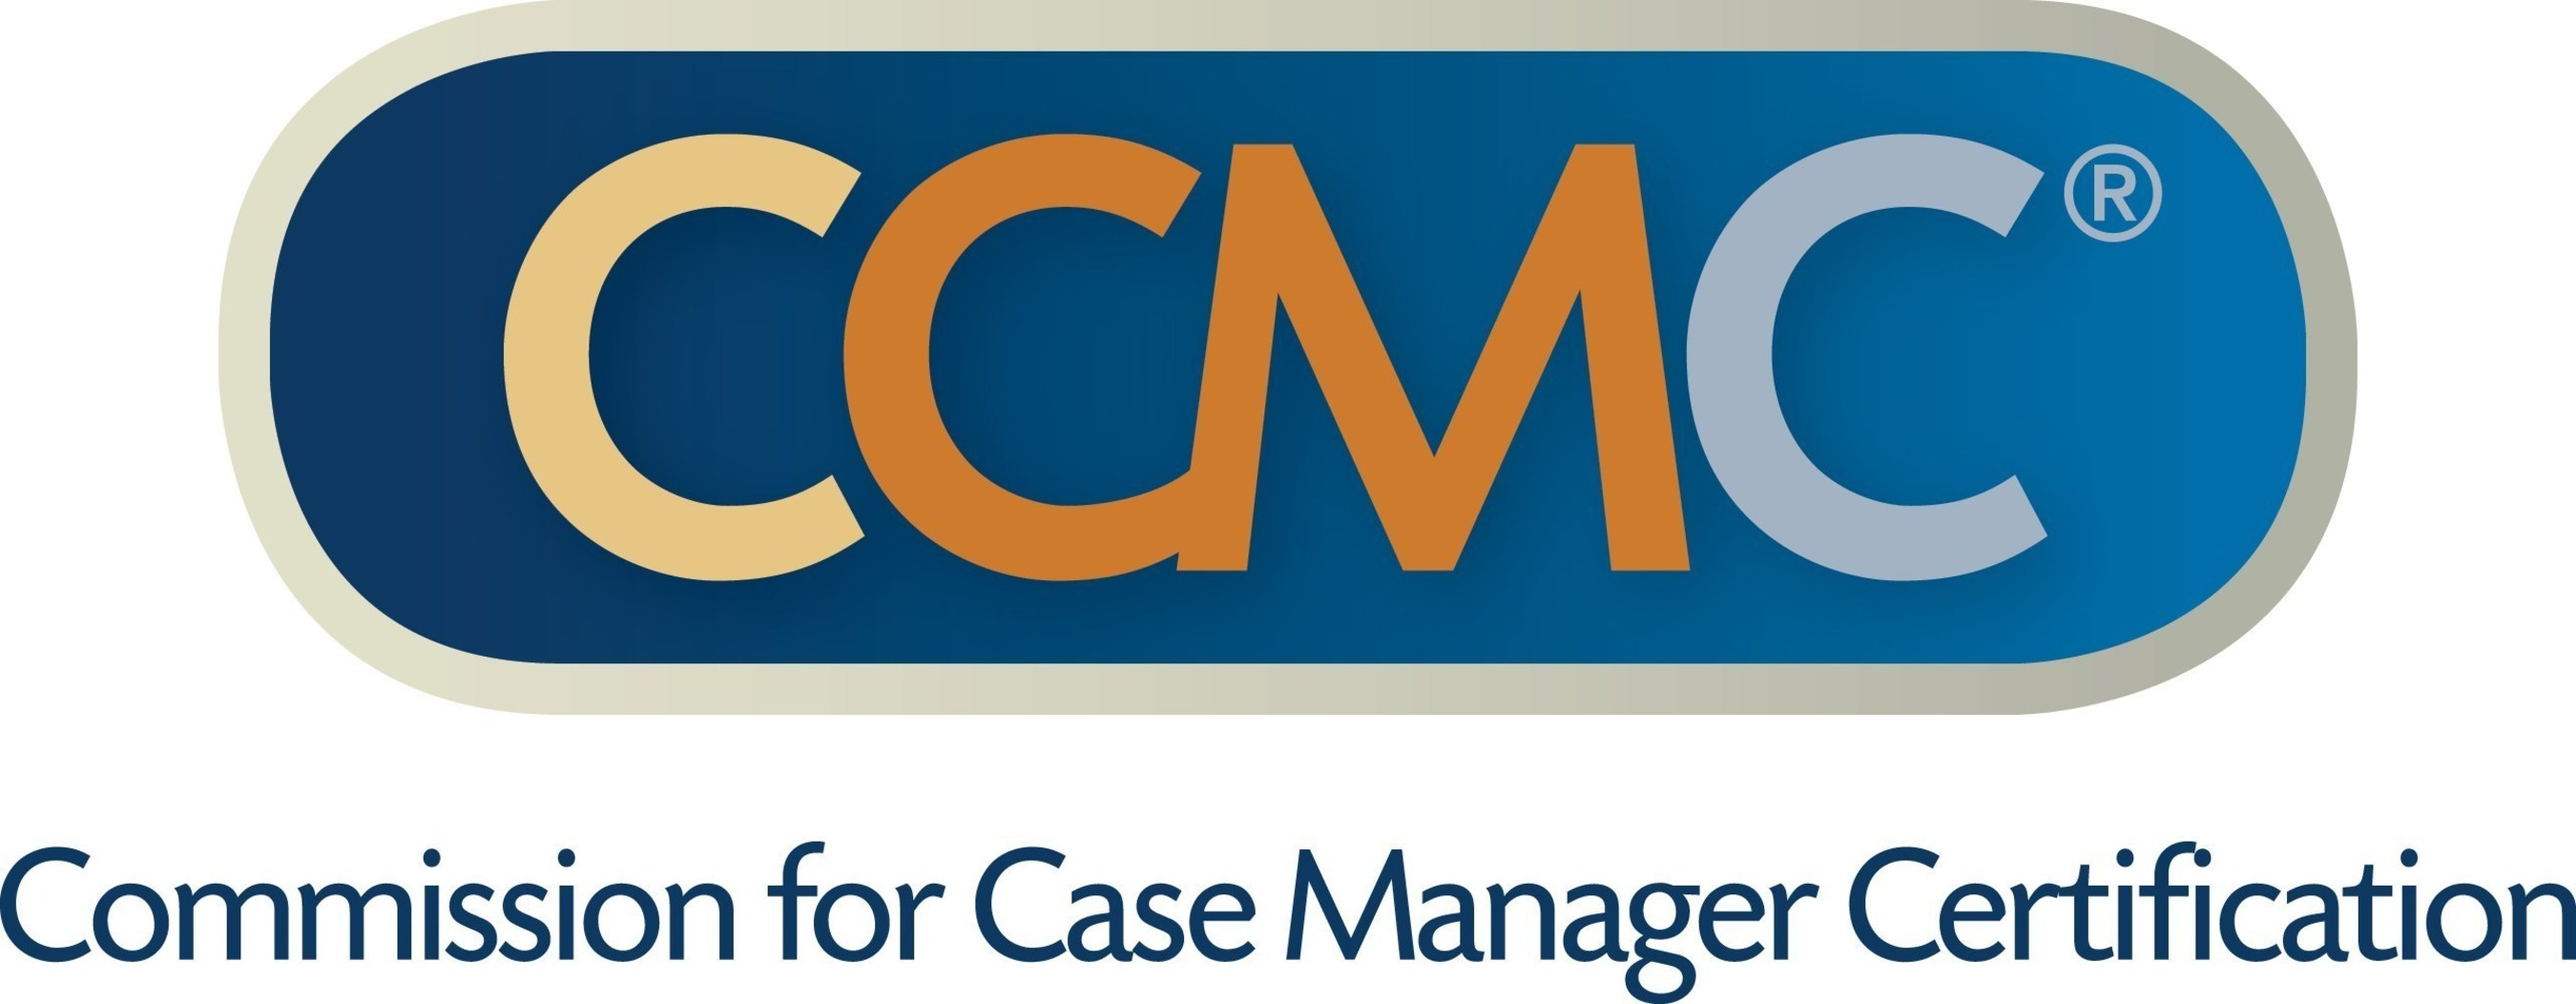 Athena Forum Courses Embed Commission For Case Manager